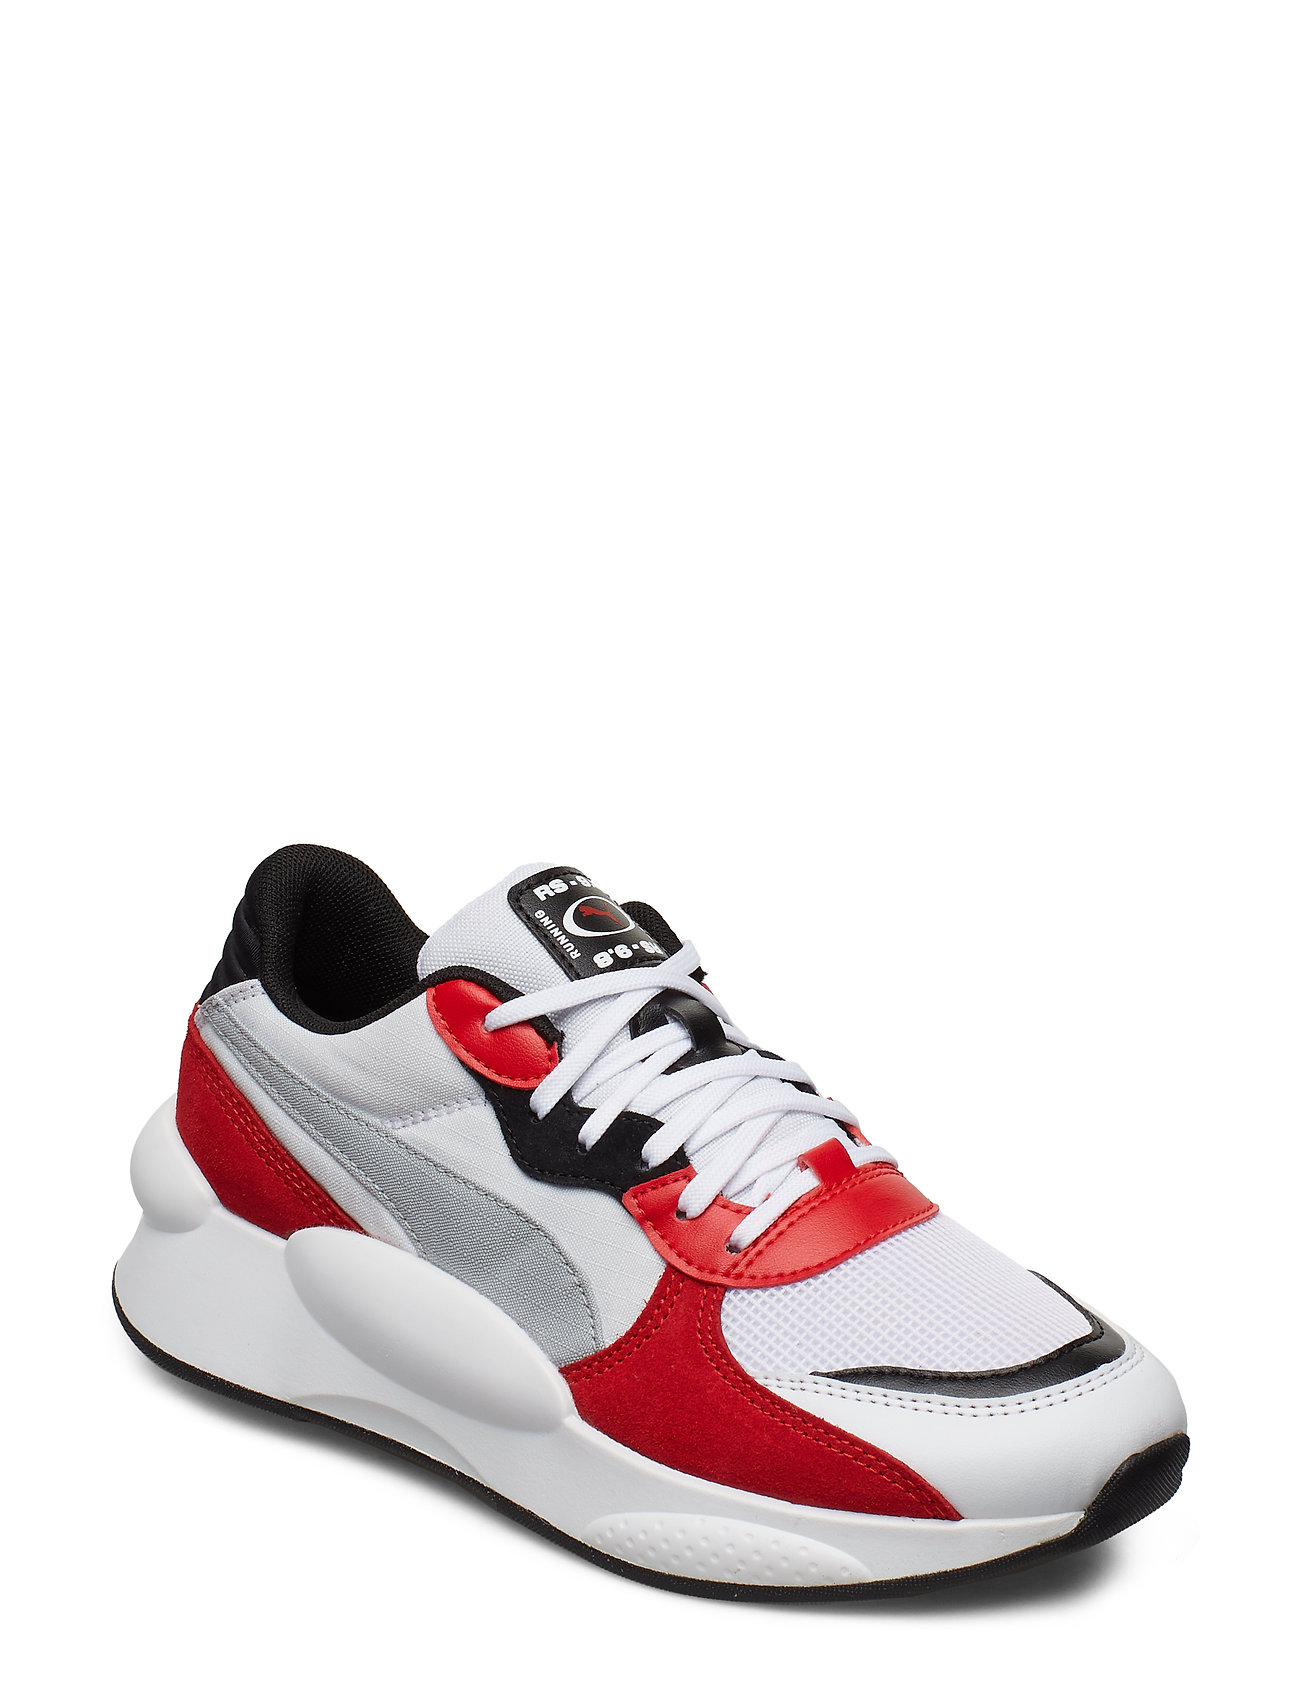 PUMA RS 9.8 Space Jr - PUMA WHITE-HIGH RISK RED